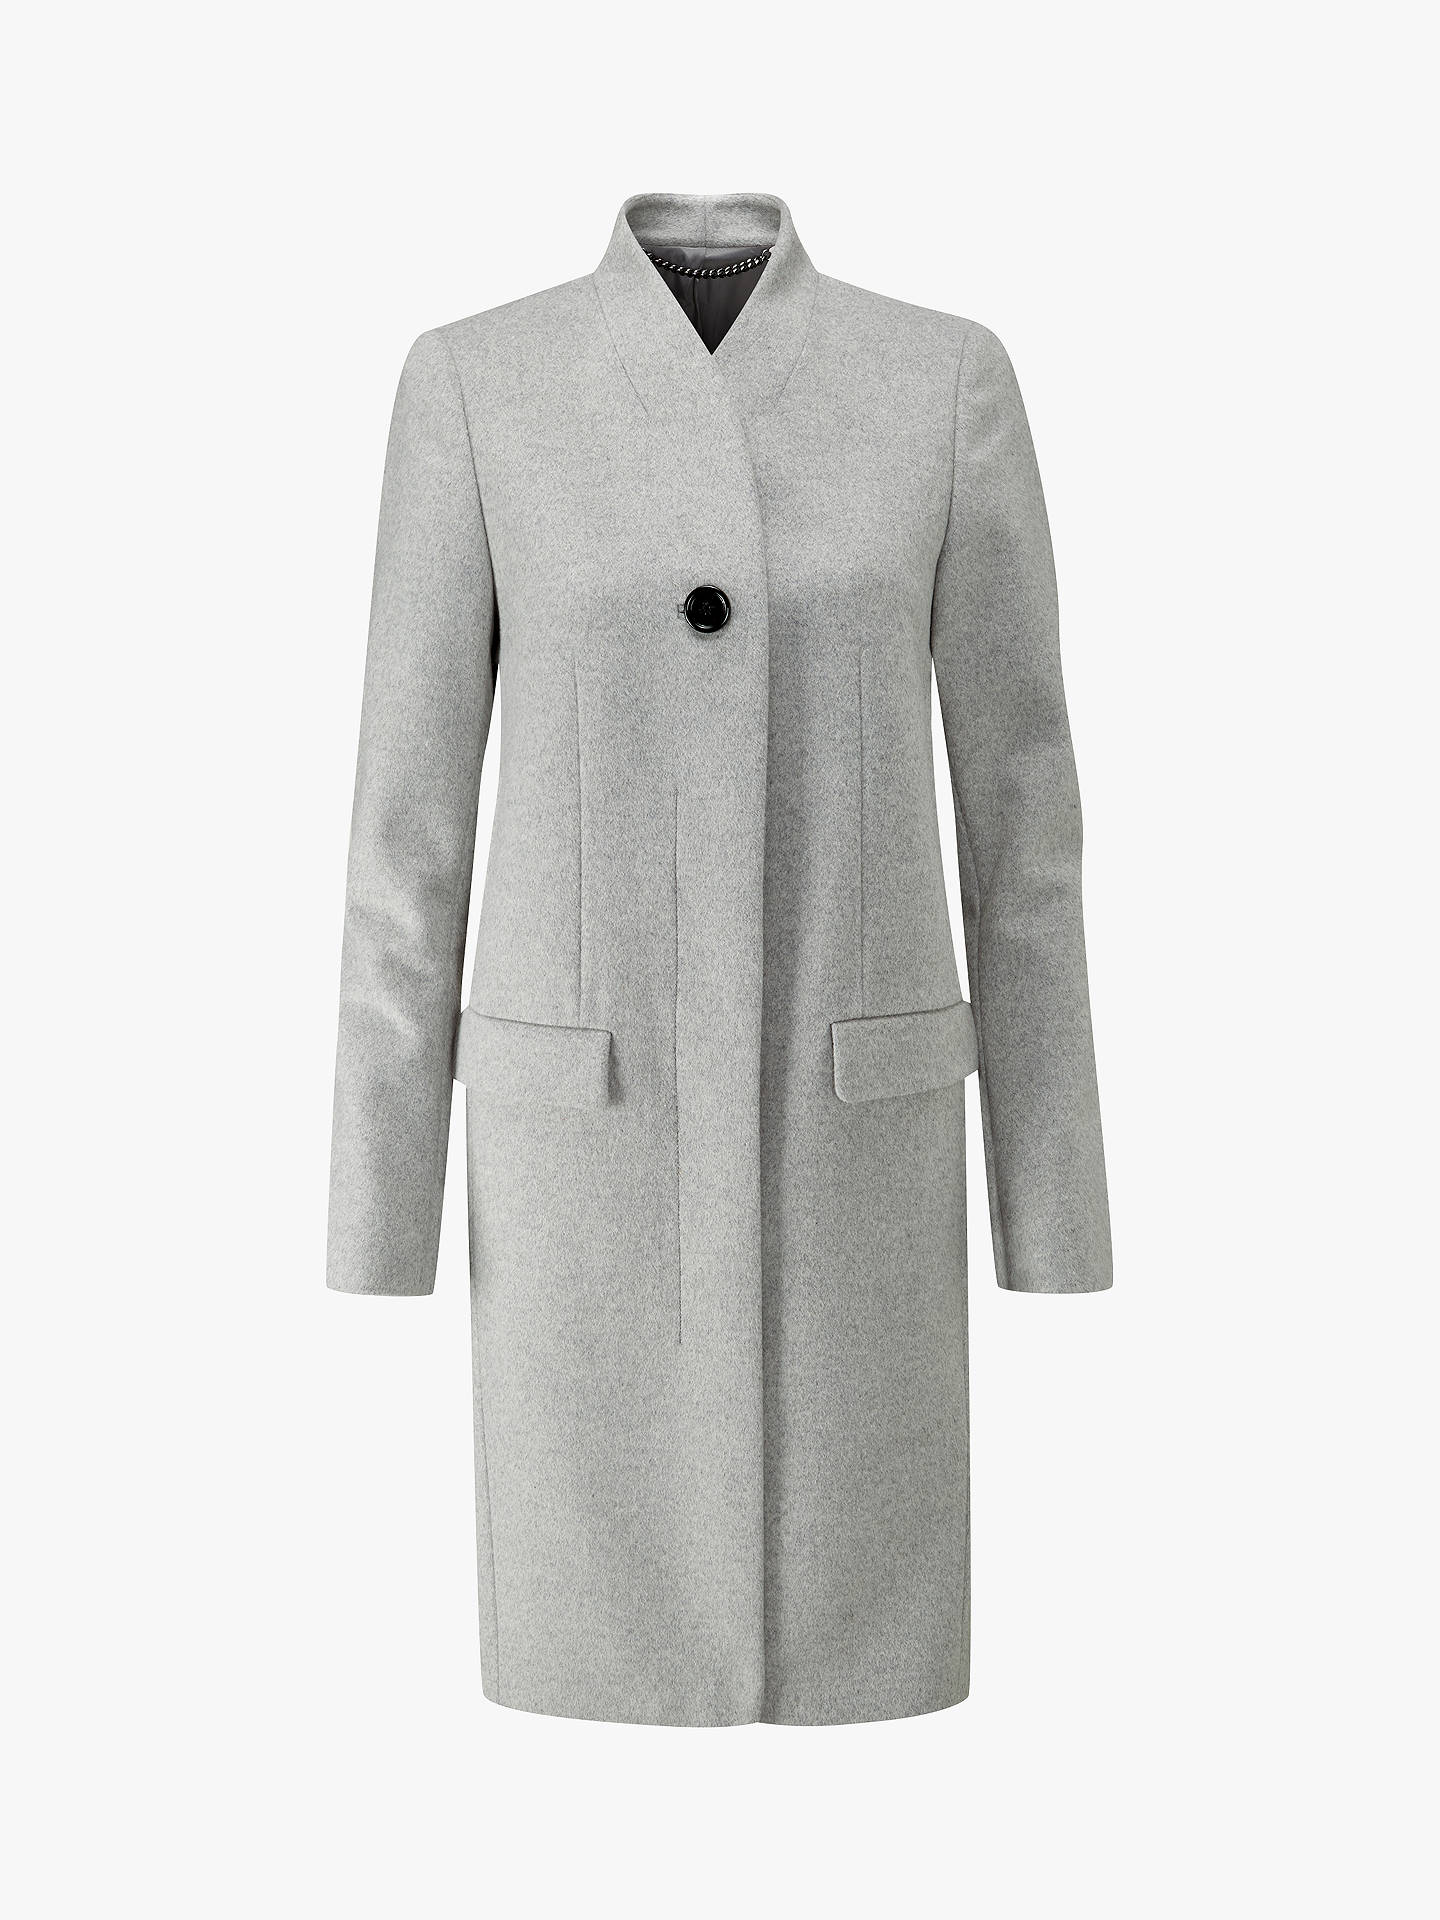 Buy Pure Collection Tailored Wool Blend Coat, Heather Grey, 8 Online at johnlewis.com